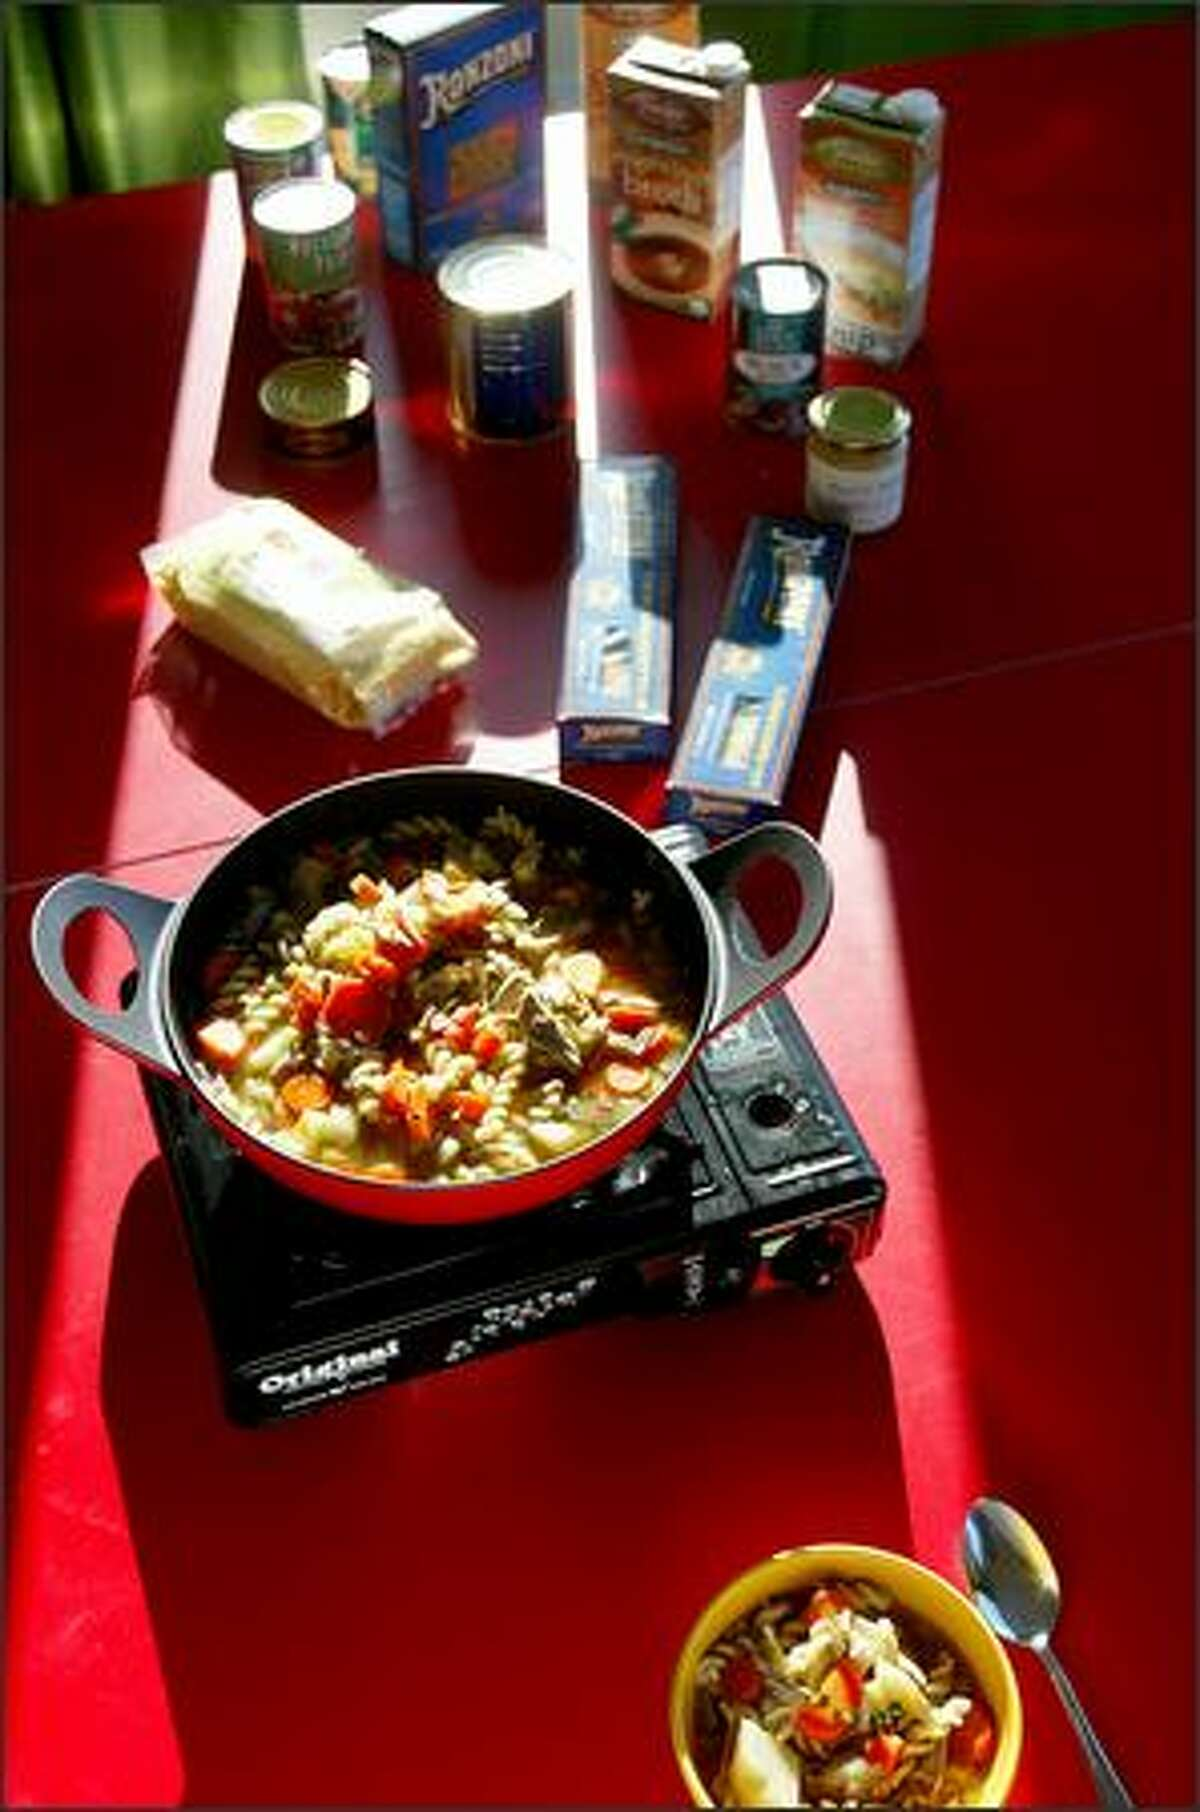 You don't have to resort to dry cereal when the power goes out. Get a butane stove and keep a stash of good supplies and you'll eat in style. If you have good chicken or mushroom stock, you can work magic with other preserved products and foods in the refrigerator.